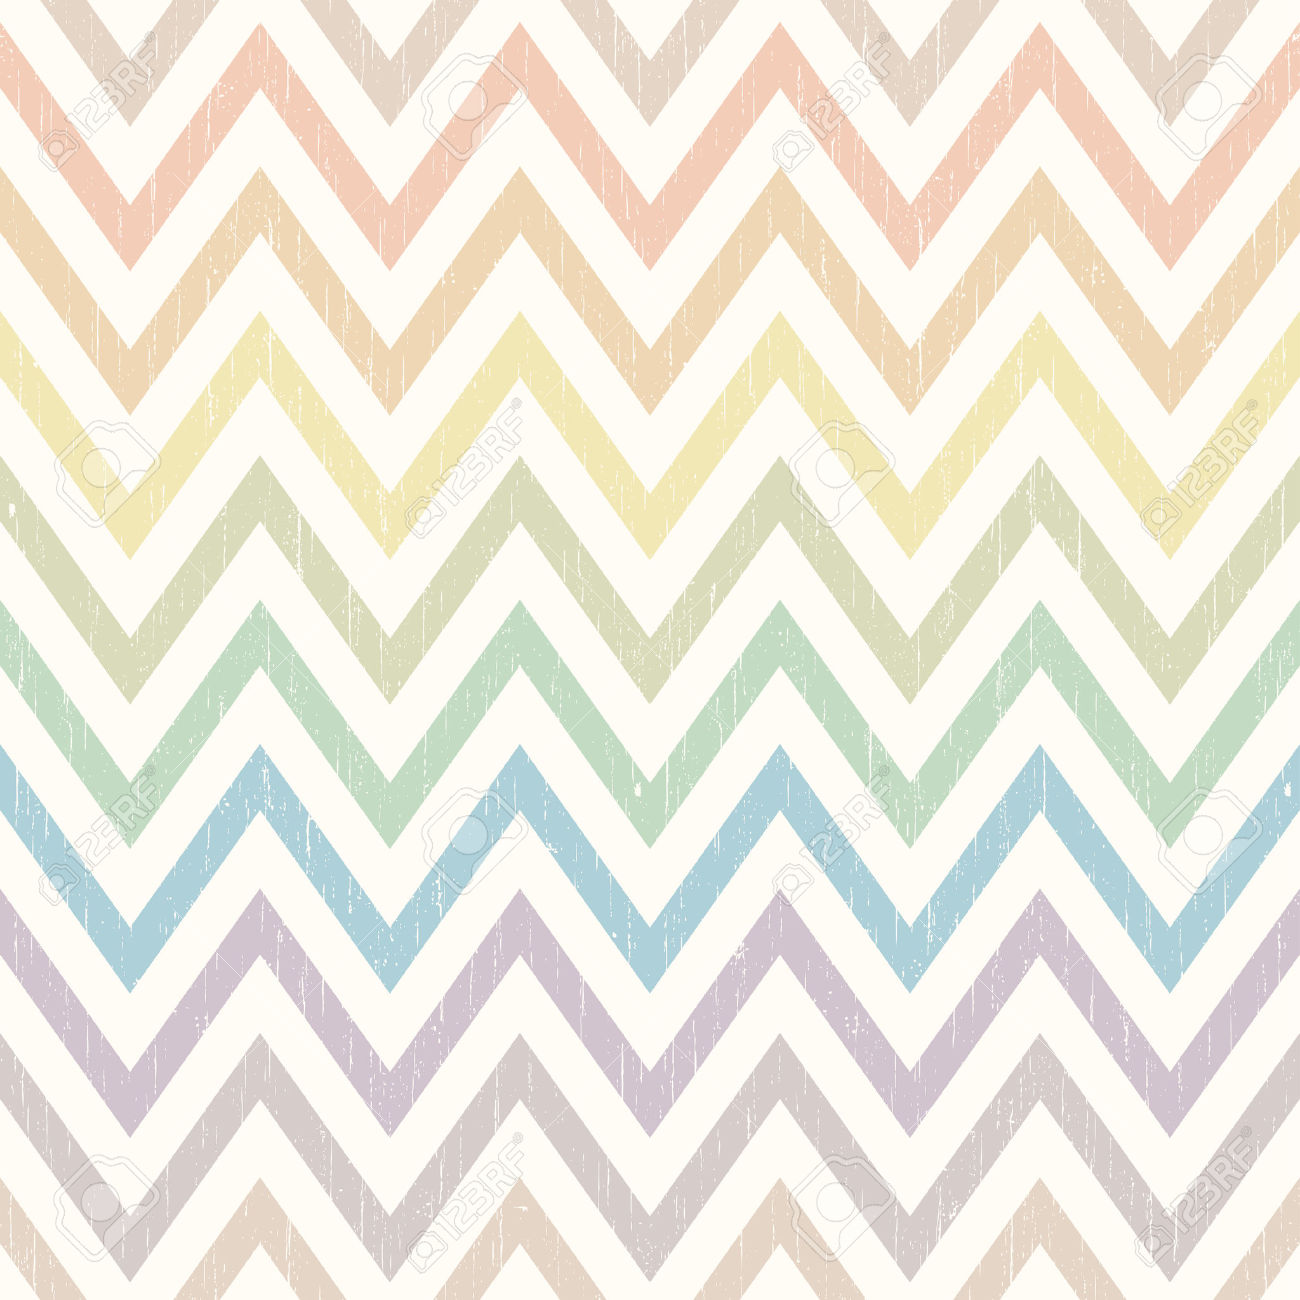 Chevron Design: 30+ Distressed Patterns, Textures, Backgrounds, Images